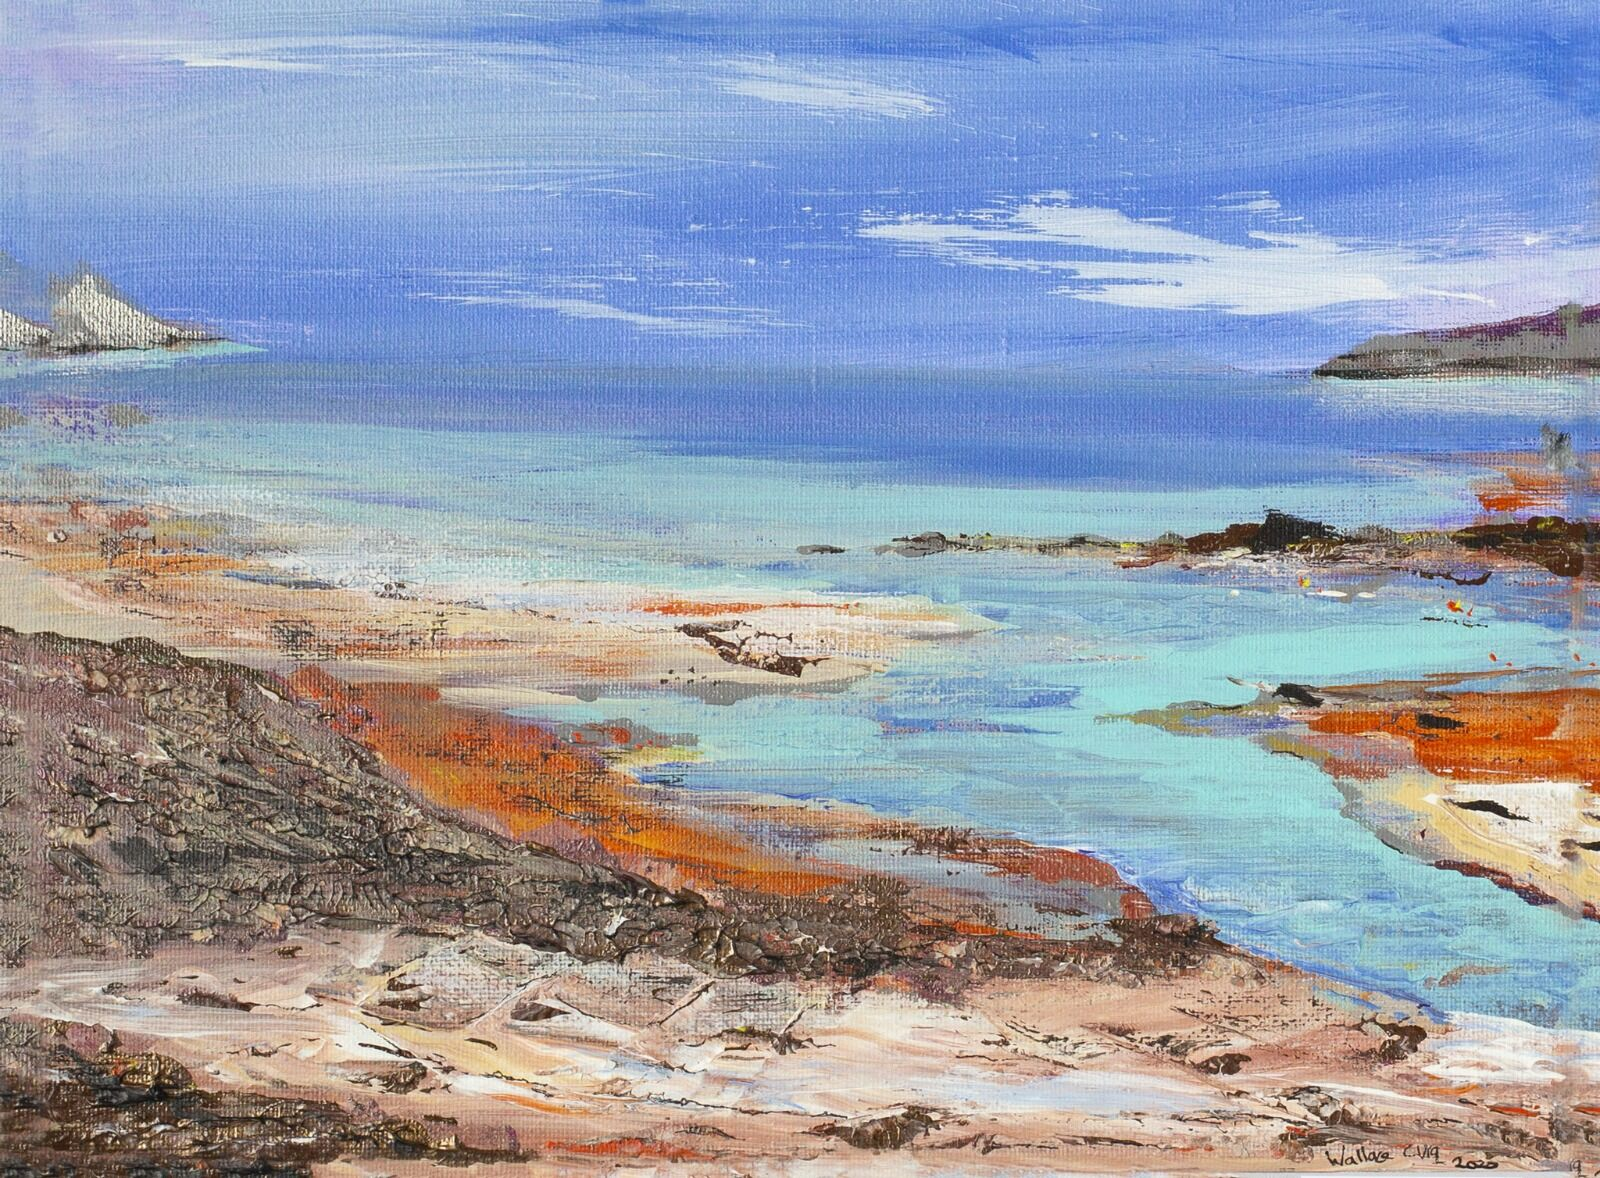 Mainland view - outer Hebrides